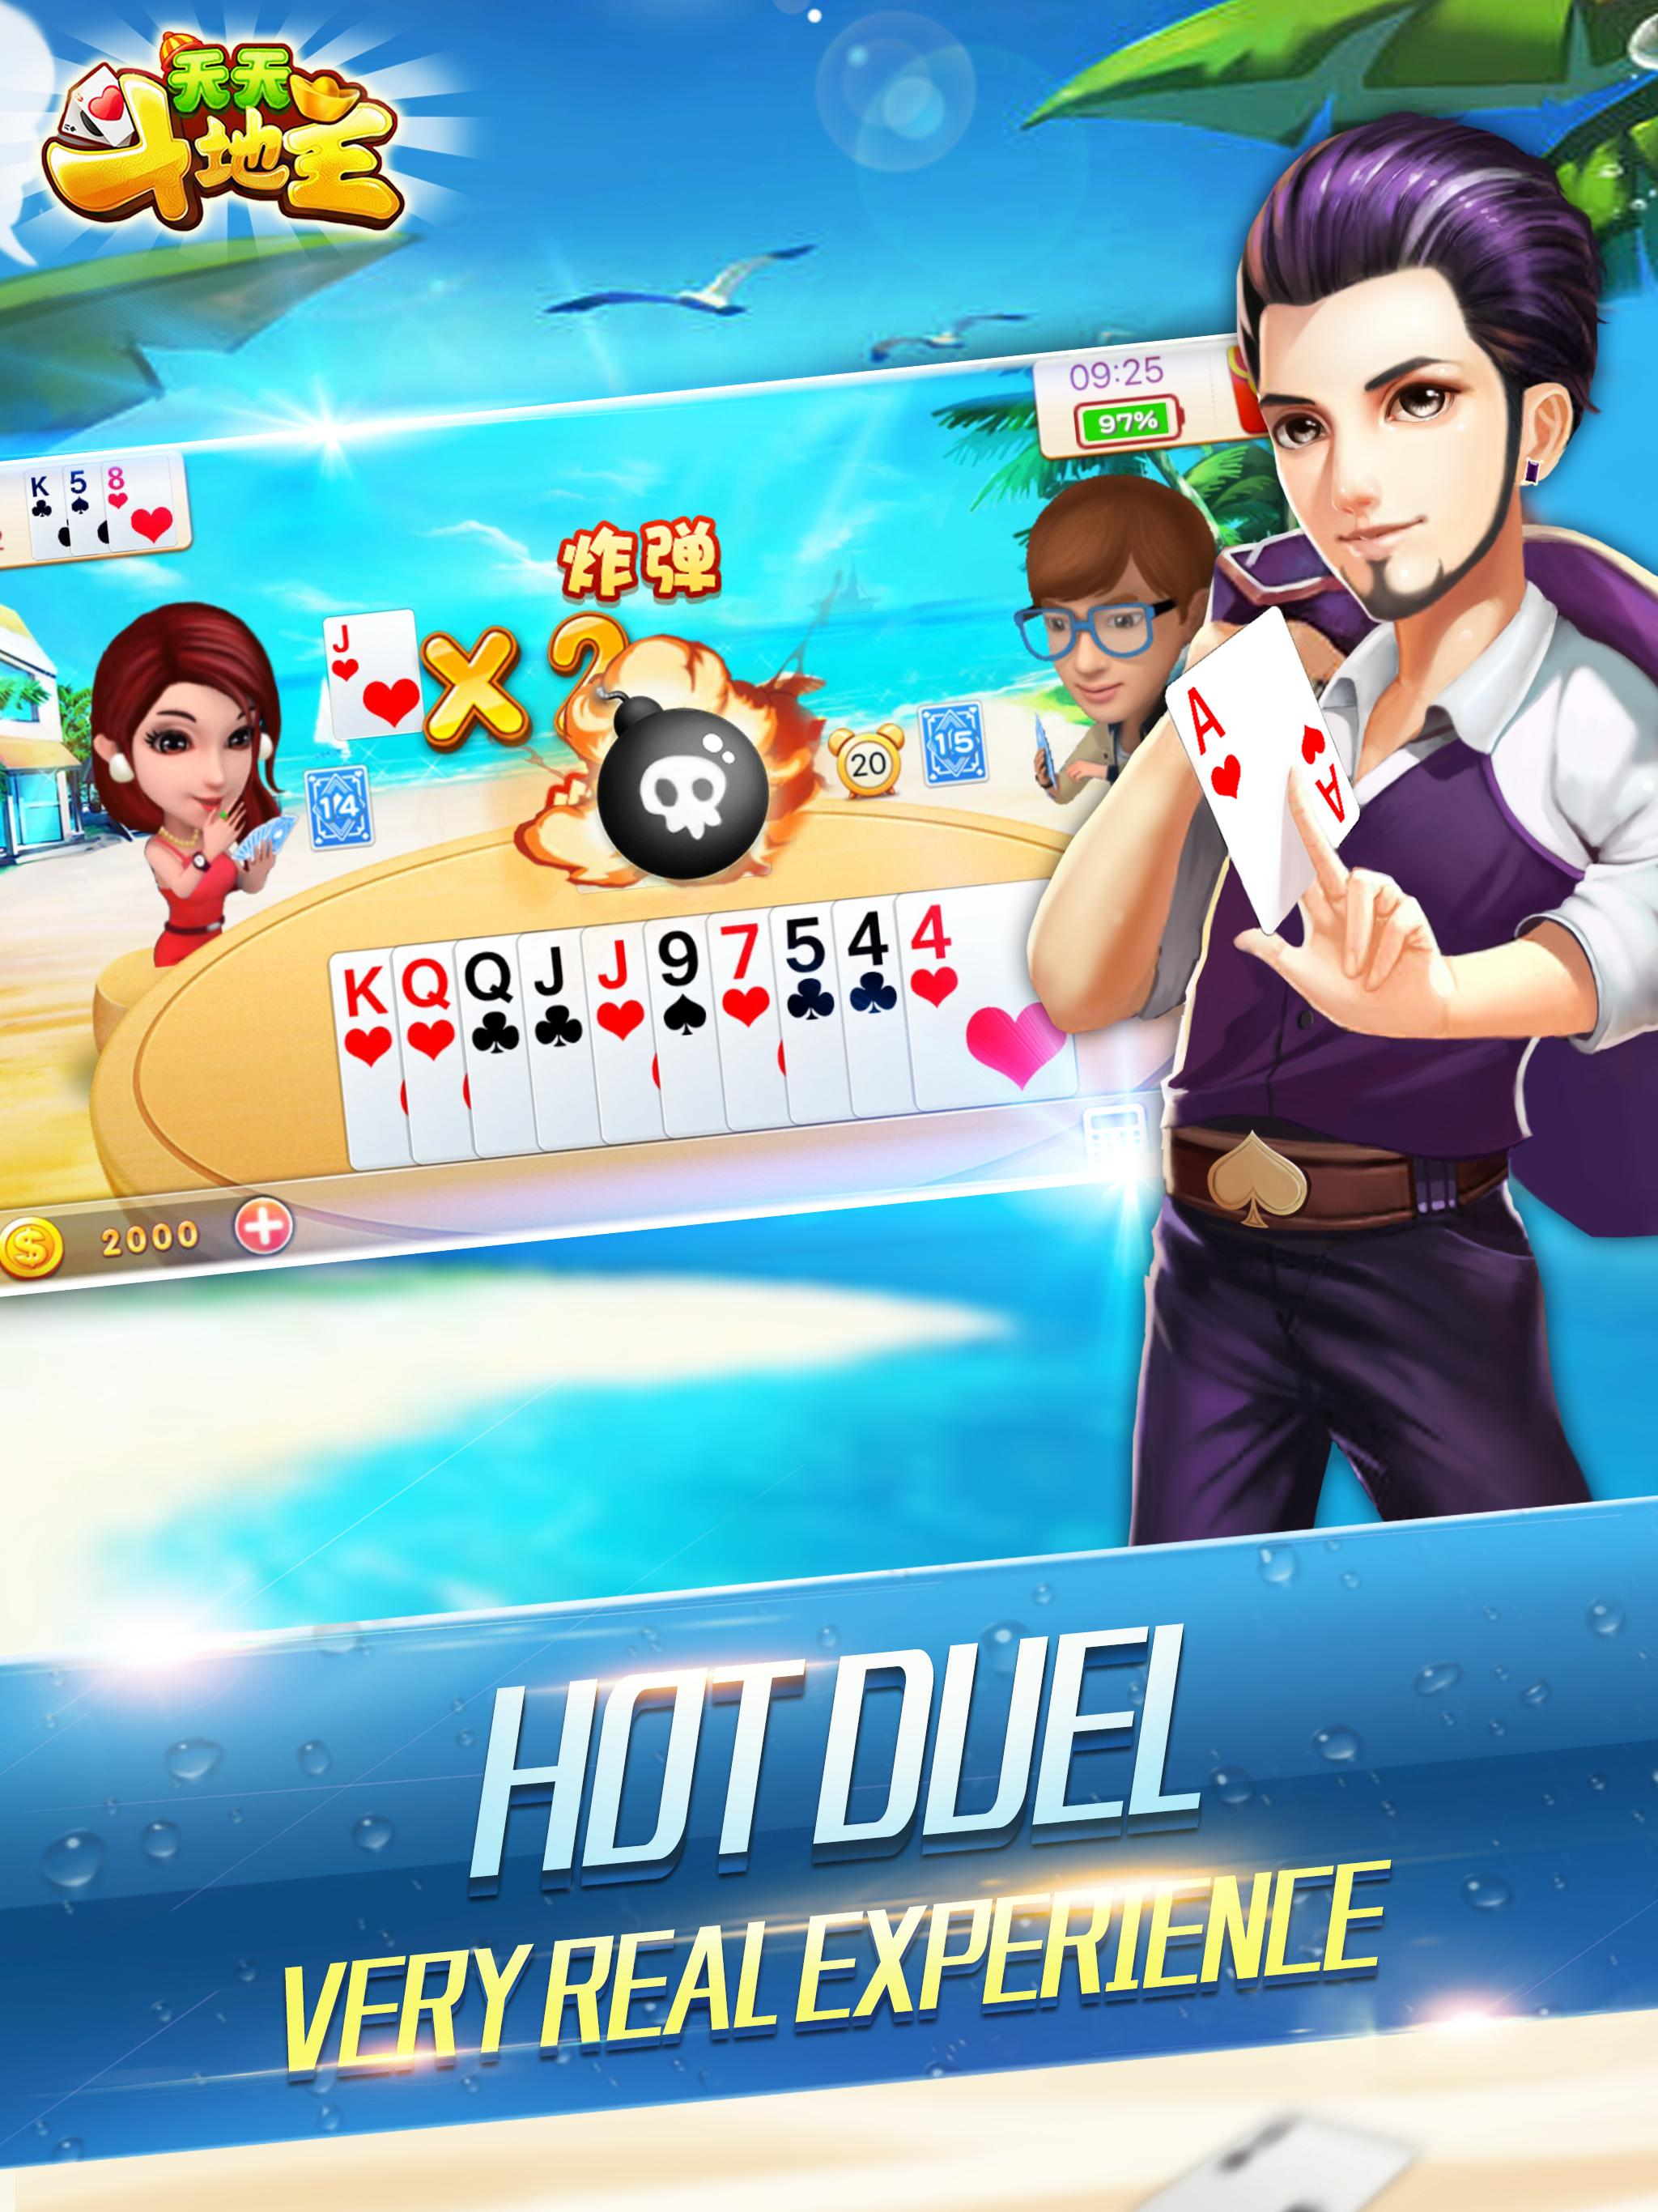 landlords-casino game and card game 1.0 Screenshot 10